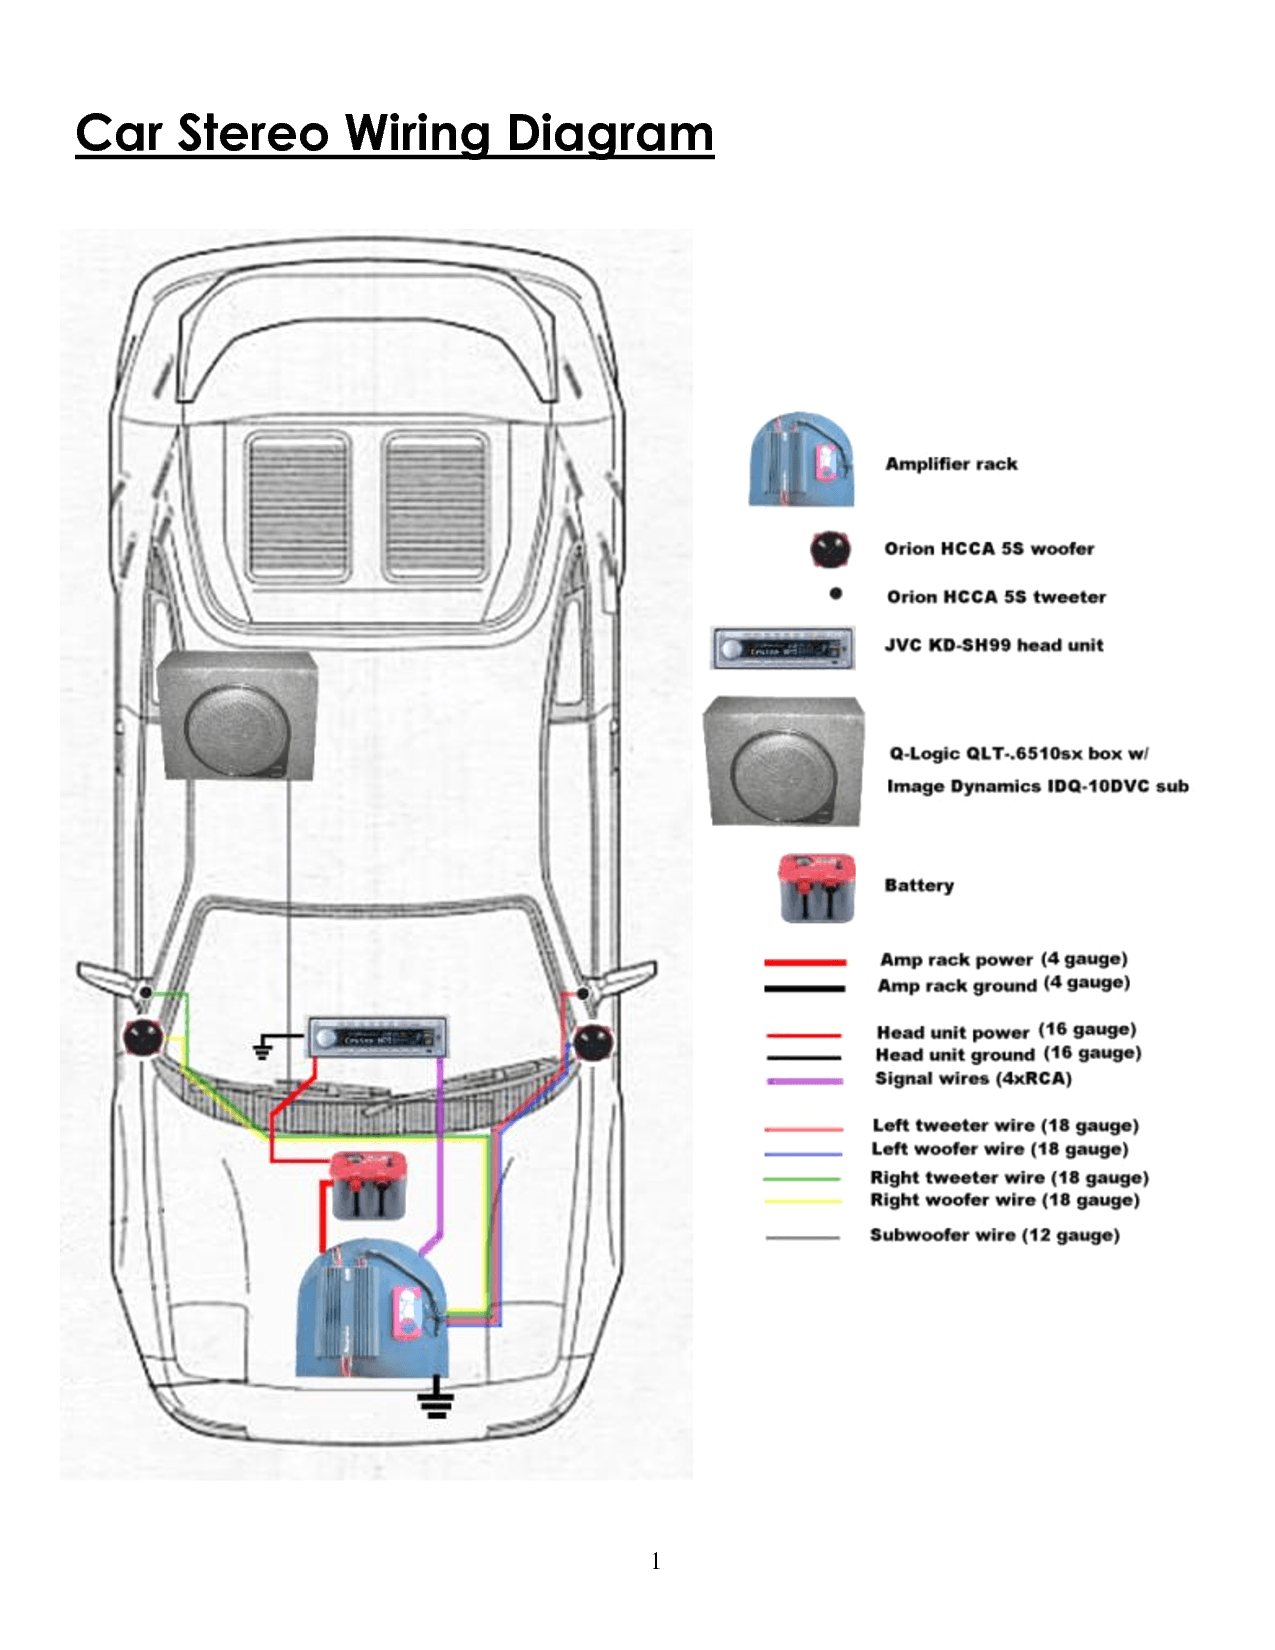 Wiring Diagram For A Car Stereo Amp And Subwoofer